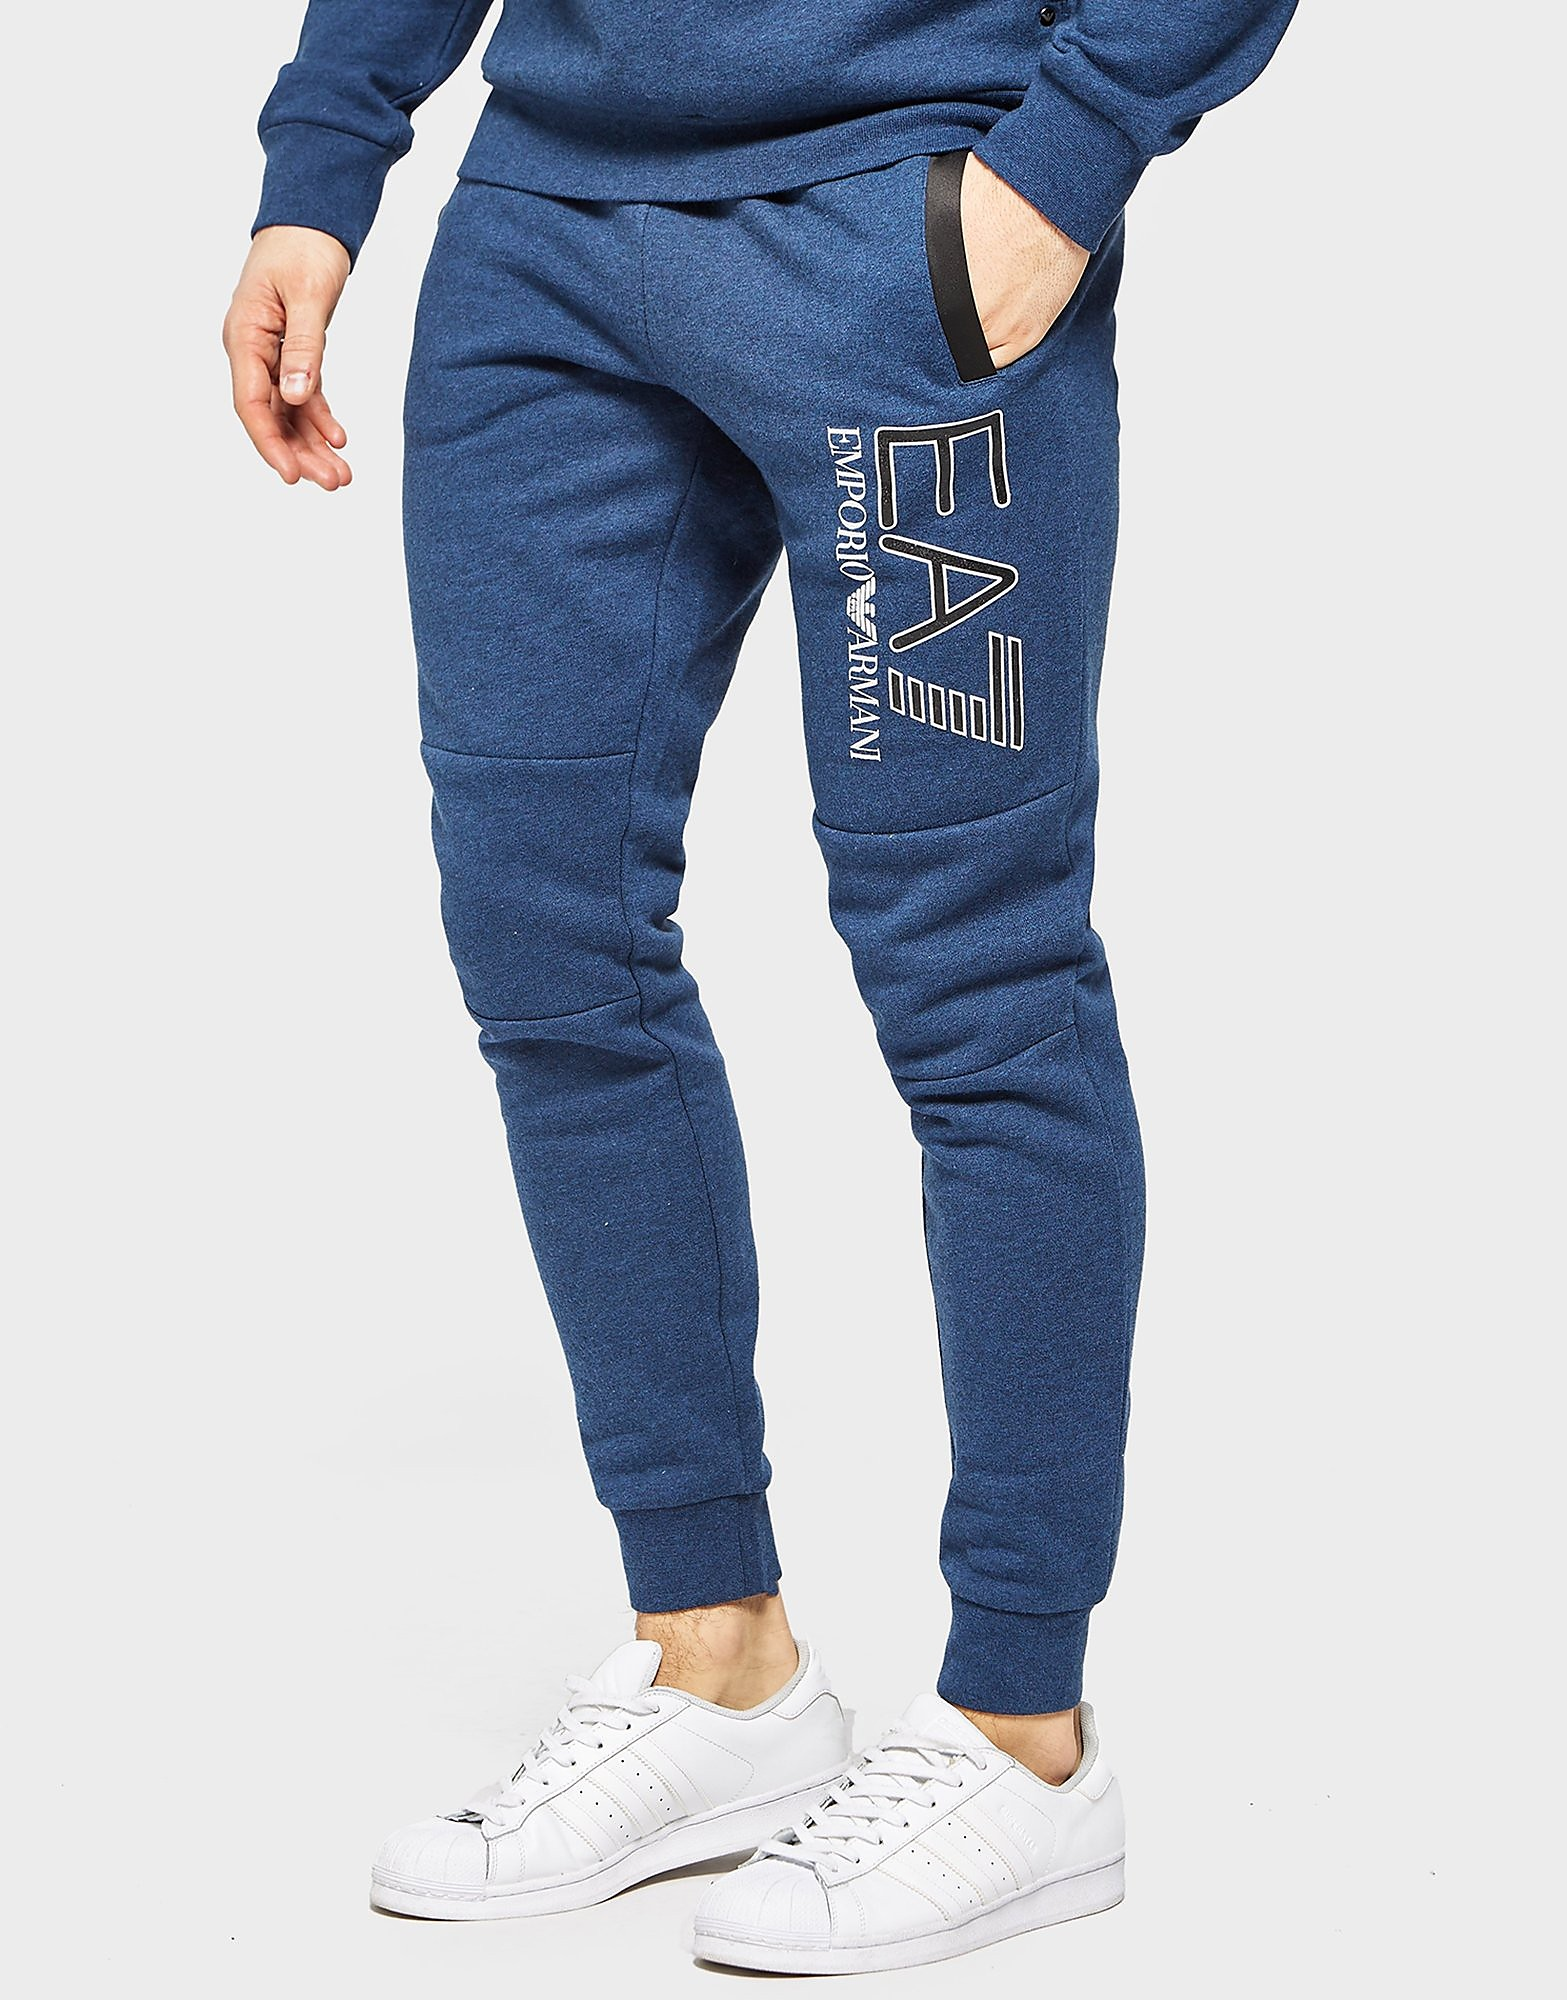 Emporio Armani EA7 Cuffed Track Pants - Exclusive